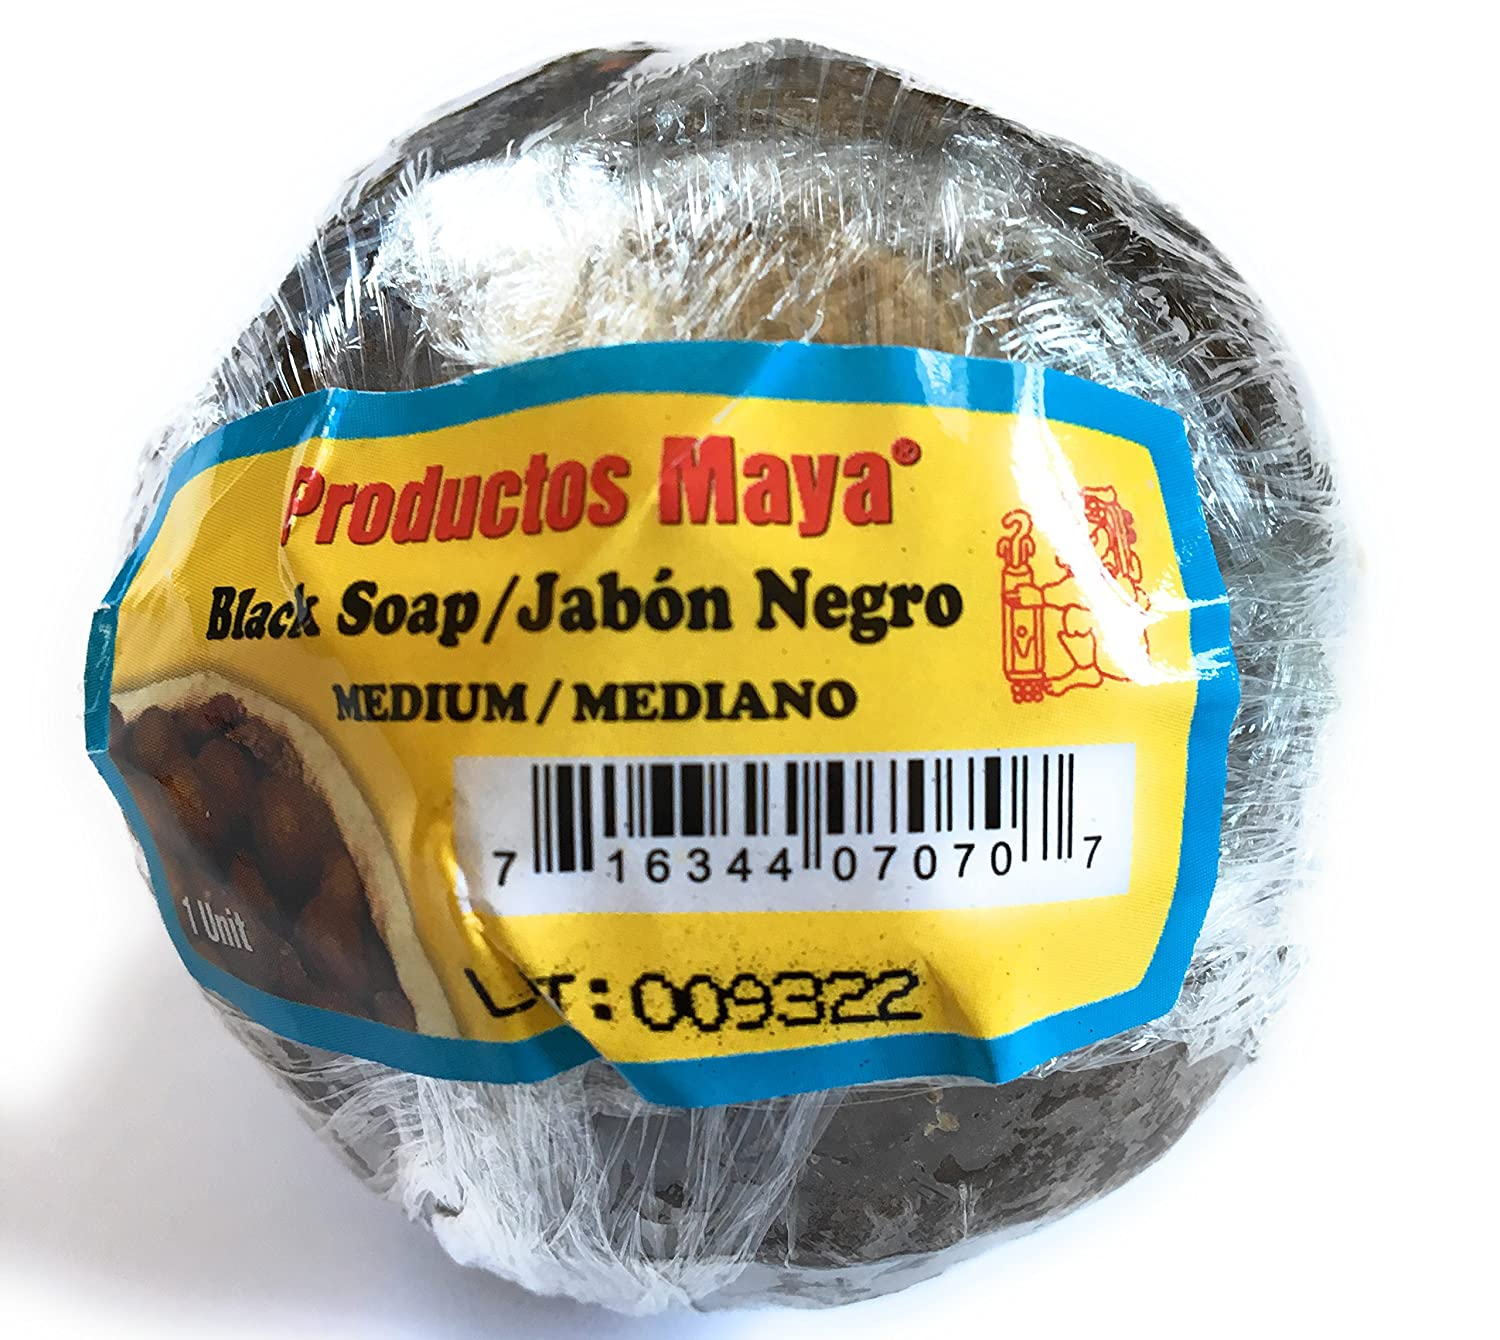 Amazon.com: Black Soap/ Jabon Negro/ Jabon De Cuche Made In El Salvador: Health & Personal Care